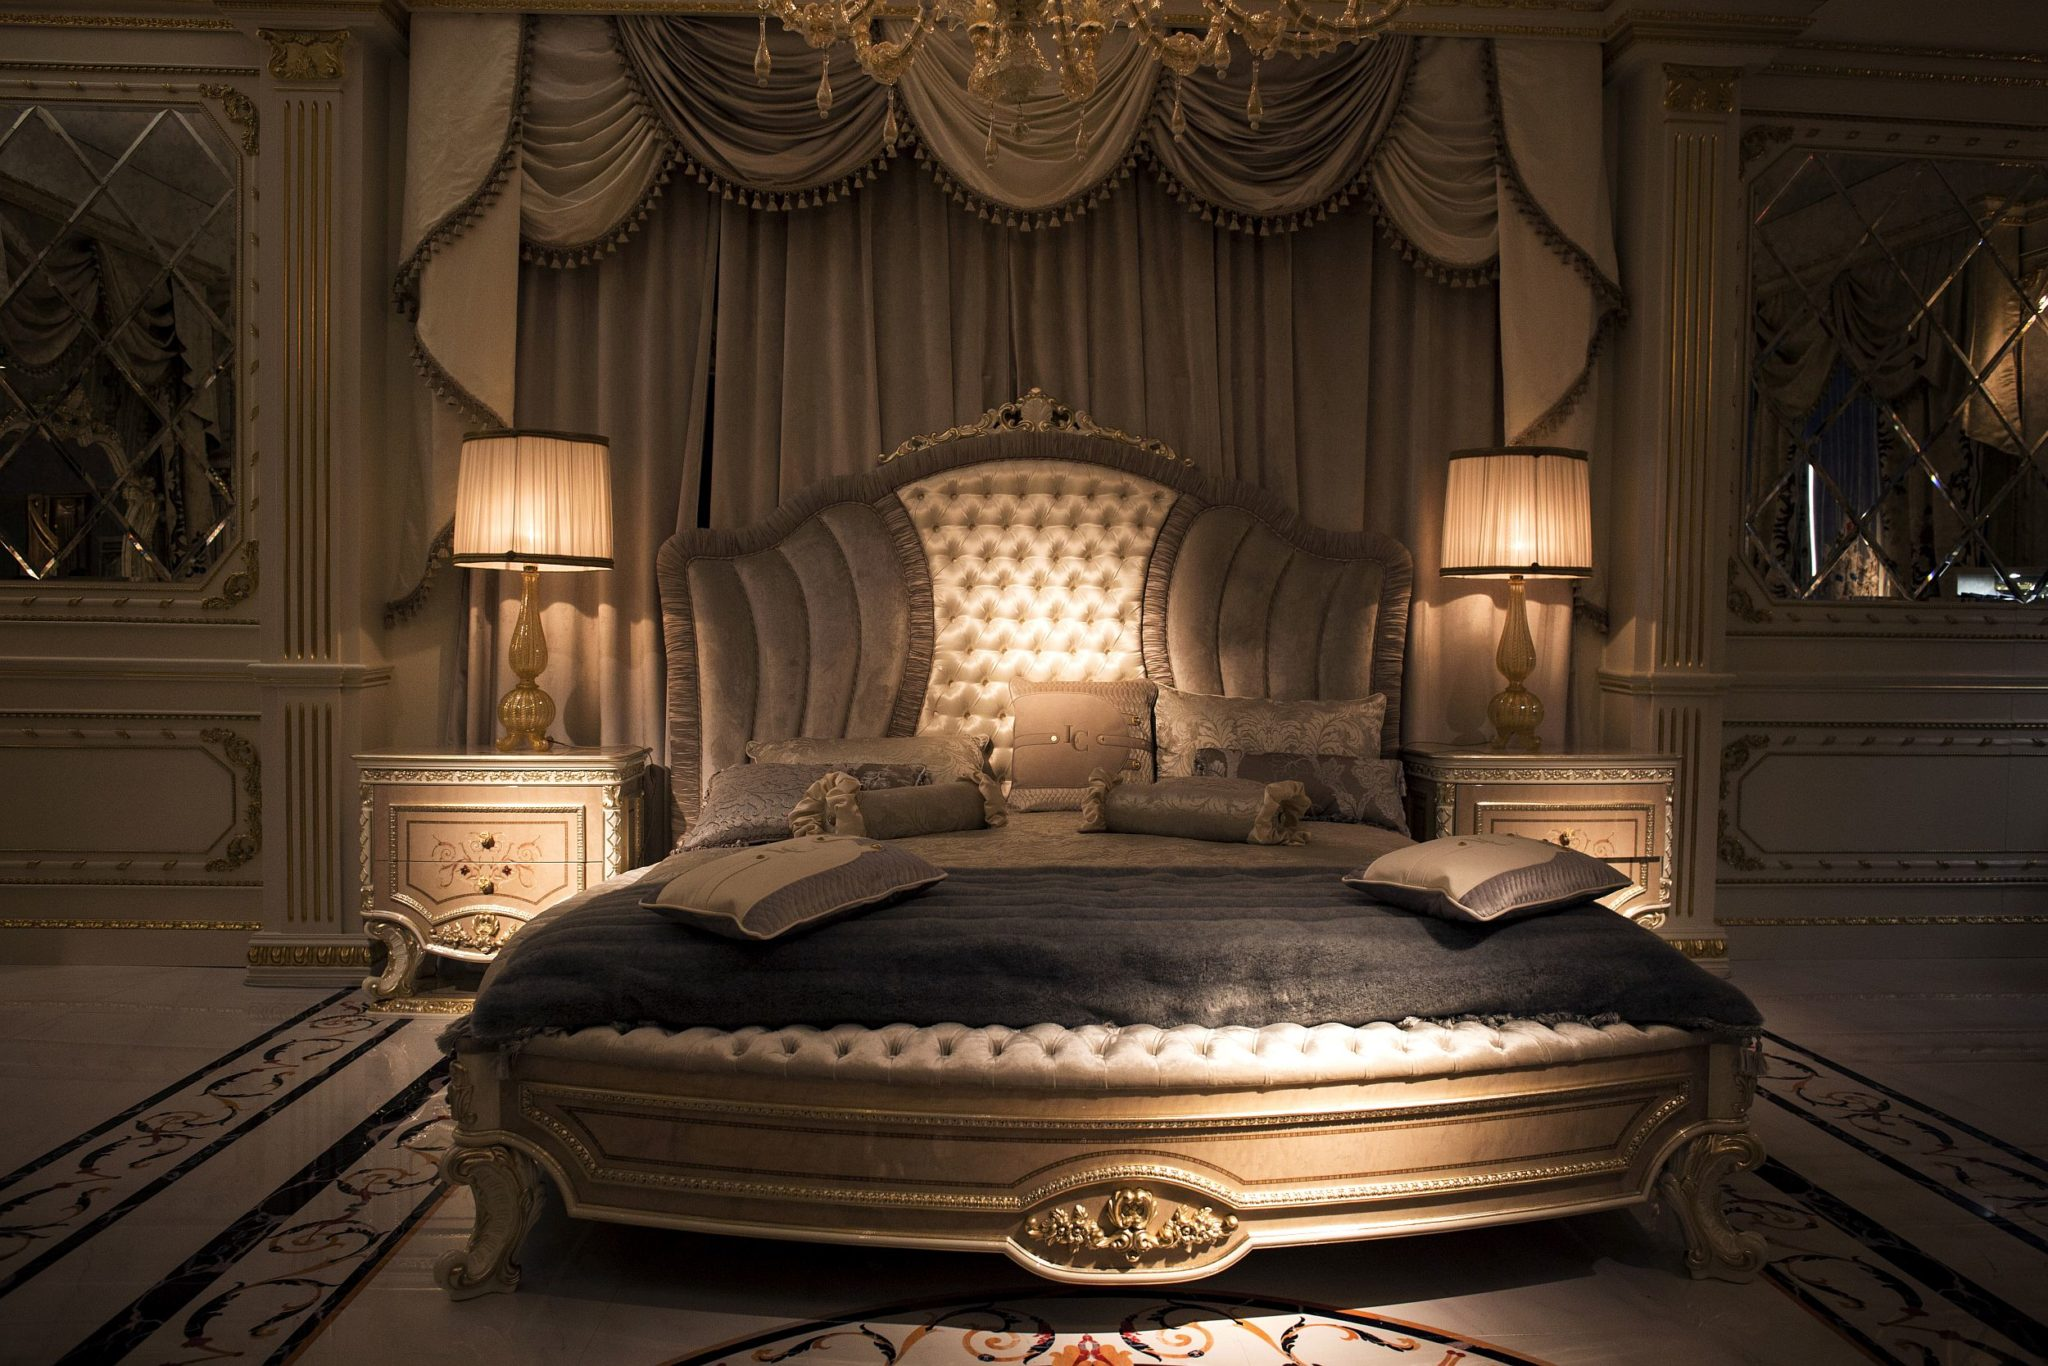 Custom-fretwork-and-marquetry-along-with-invaluable-wooden-decor-shapes-stunning-bedroom-sets-from-La-Contessina